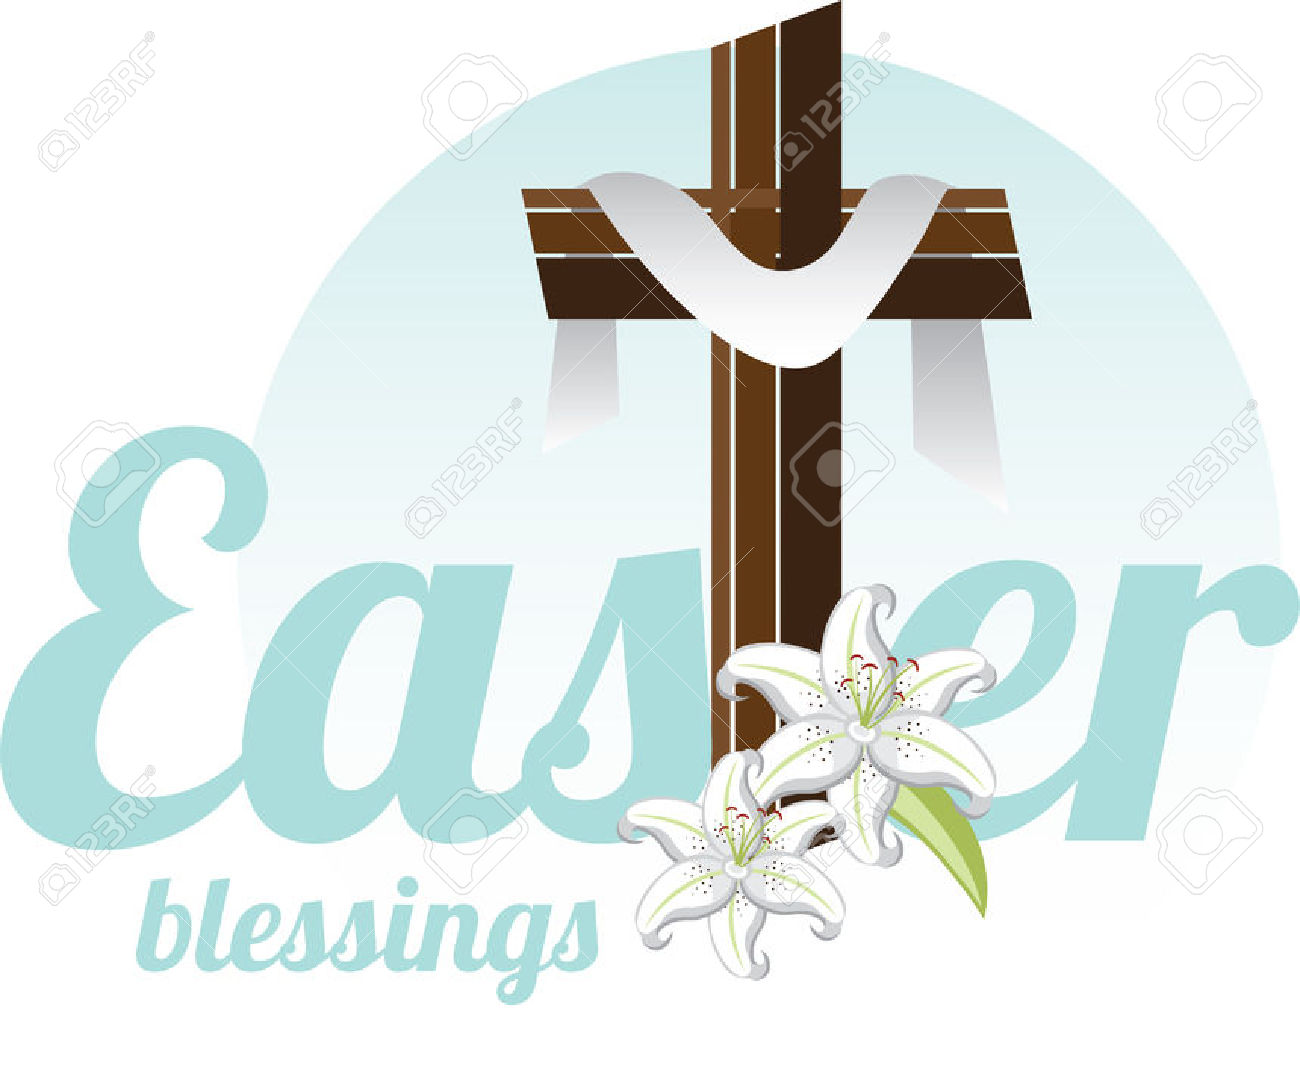 hight resolution of he has risen have faith in him and he always will be there